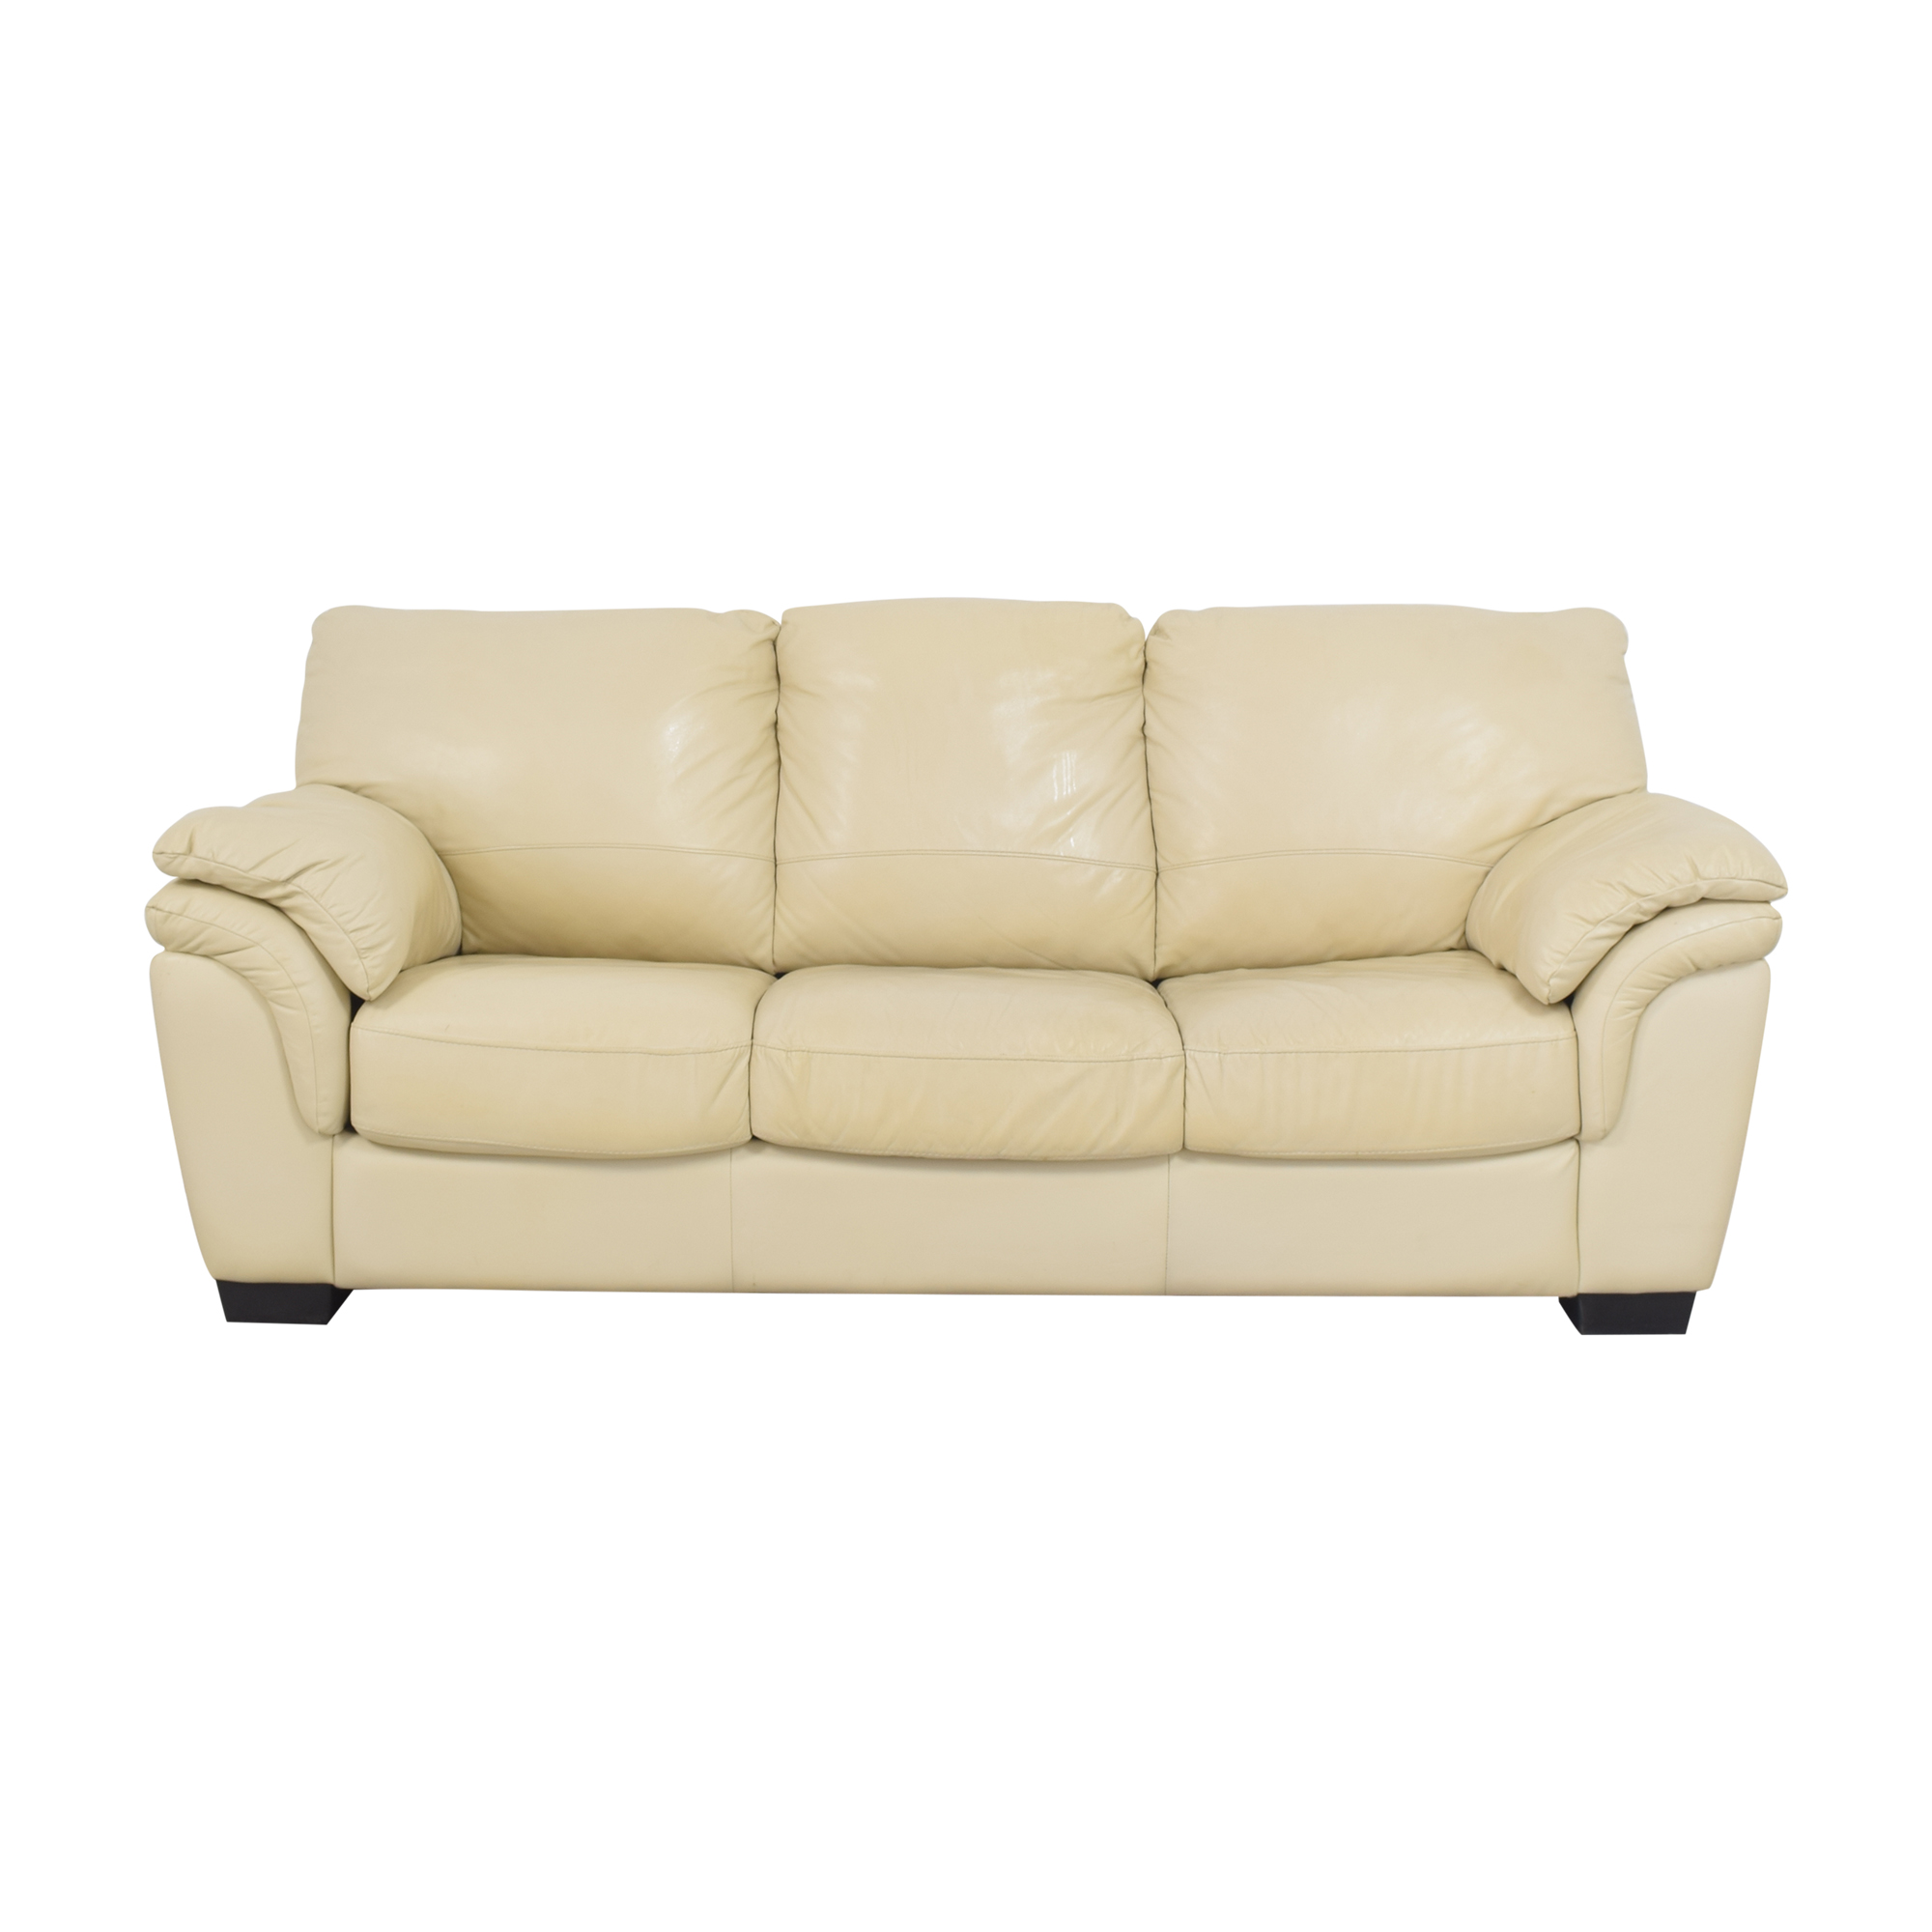 Italsofa Italsofa Sleeper Sofa coupon